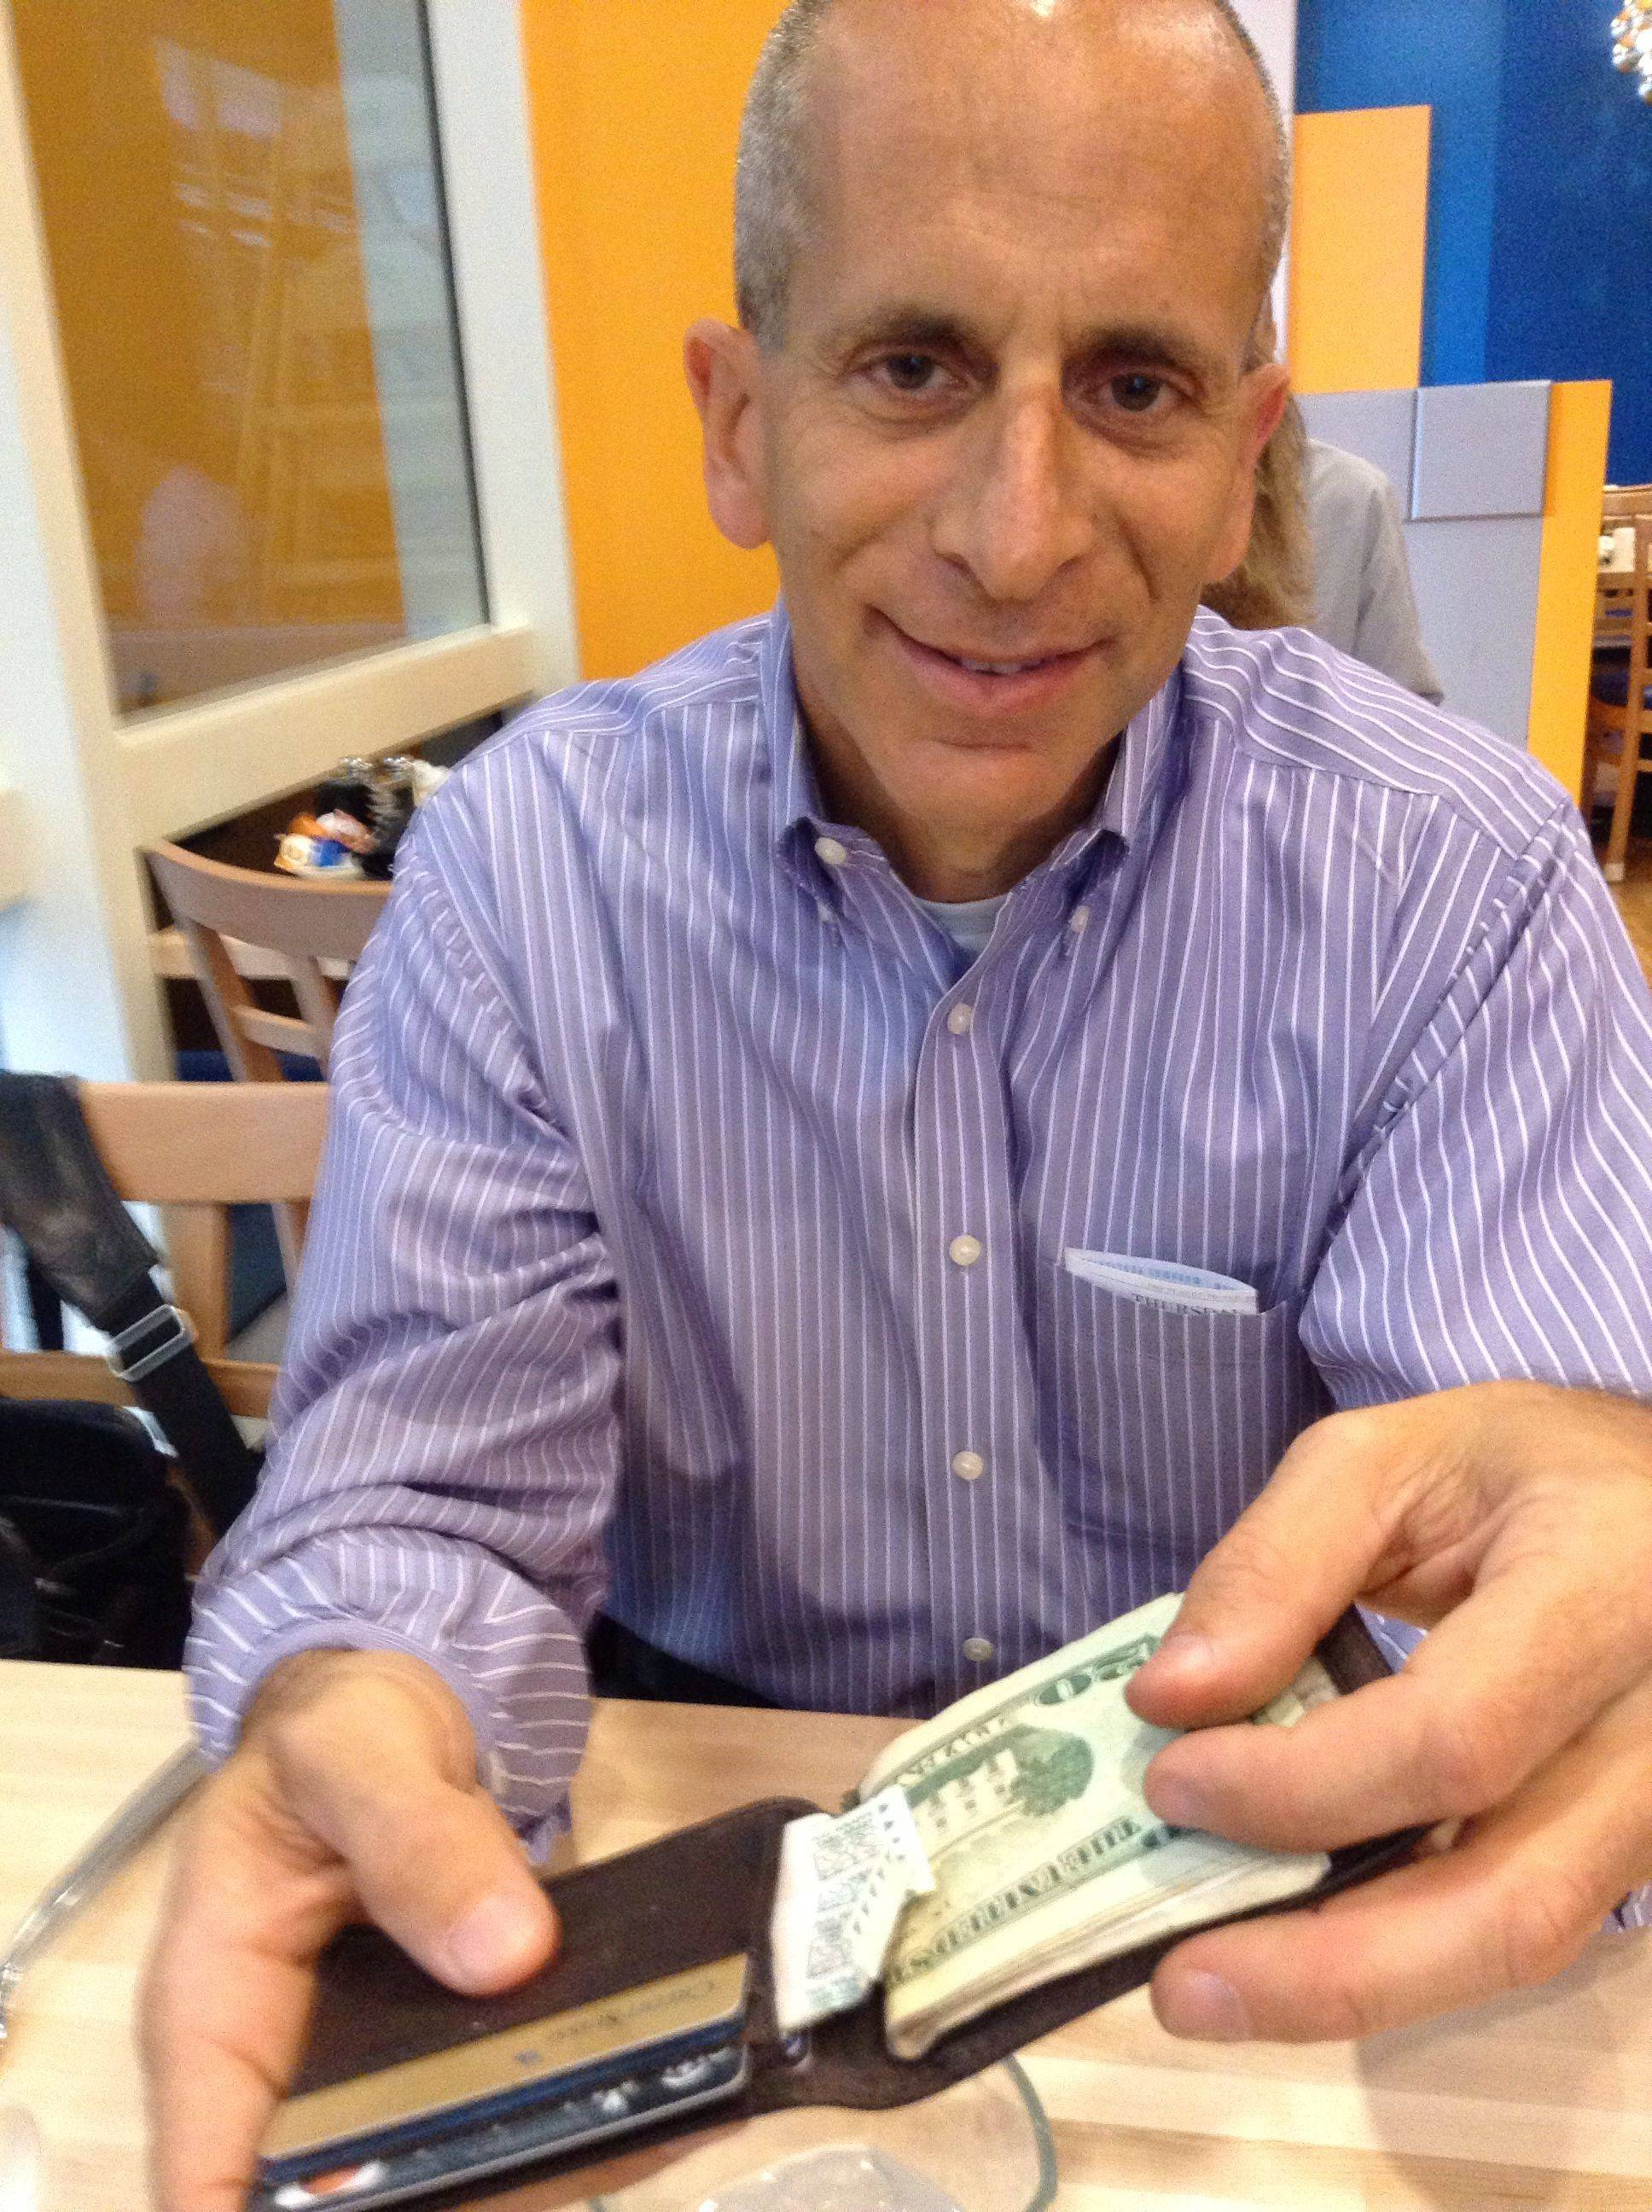 Illinois Fatherhood Initiative founder David Hirsch shows off the Band-Aid he's kept in his wallet since his kids were young. It's such a simple fathering tip, but it develops the idea that Dad is somebody to turn to when help is needed.